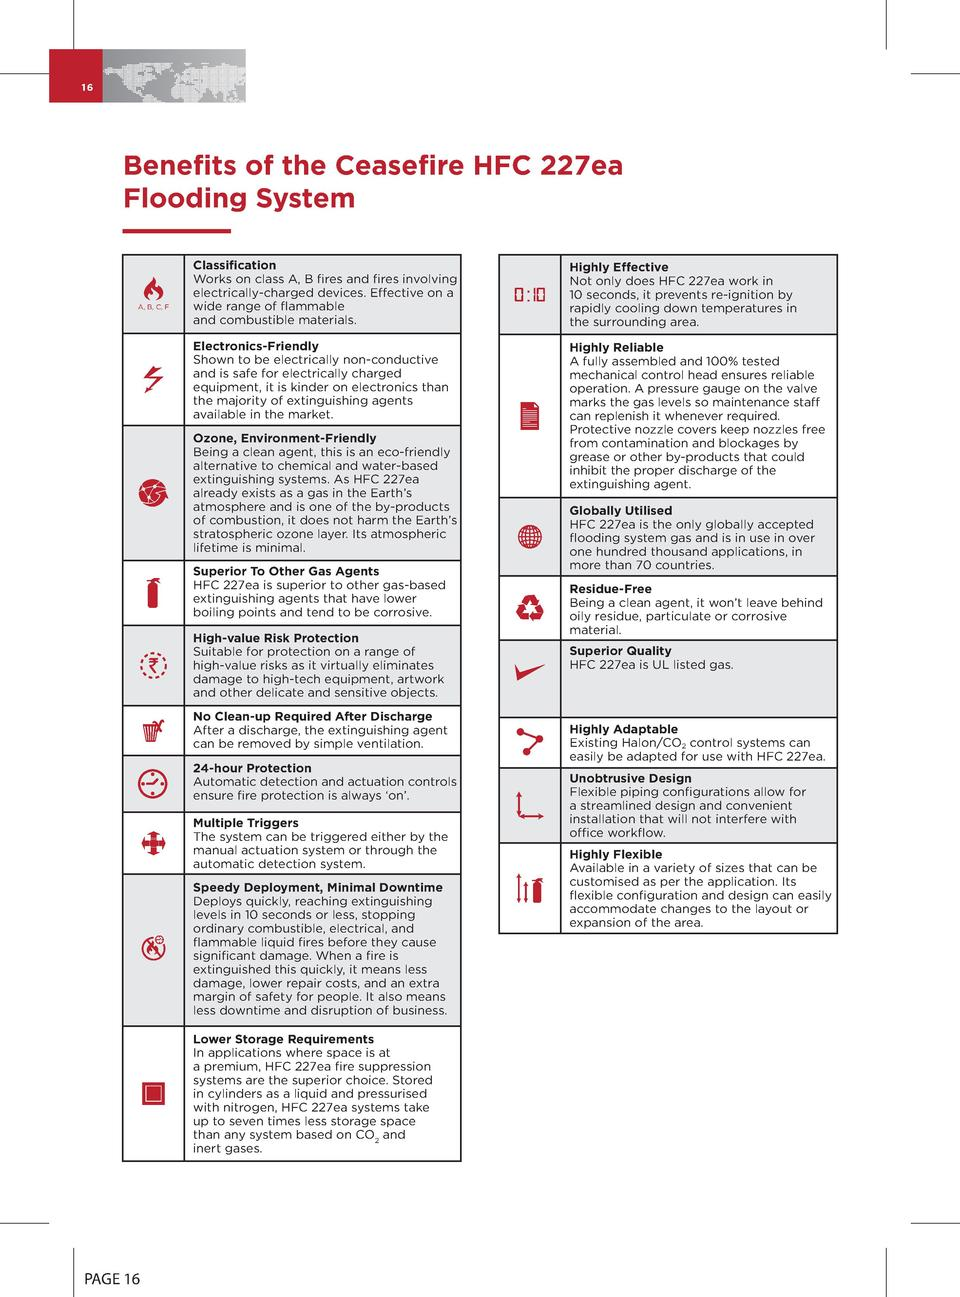 16  Benefits of the Ceasefire HFC 227ea Flooding System  A, B, C, F  Classification Works on class A, B fires and fires in...